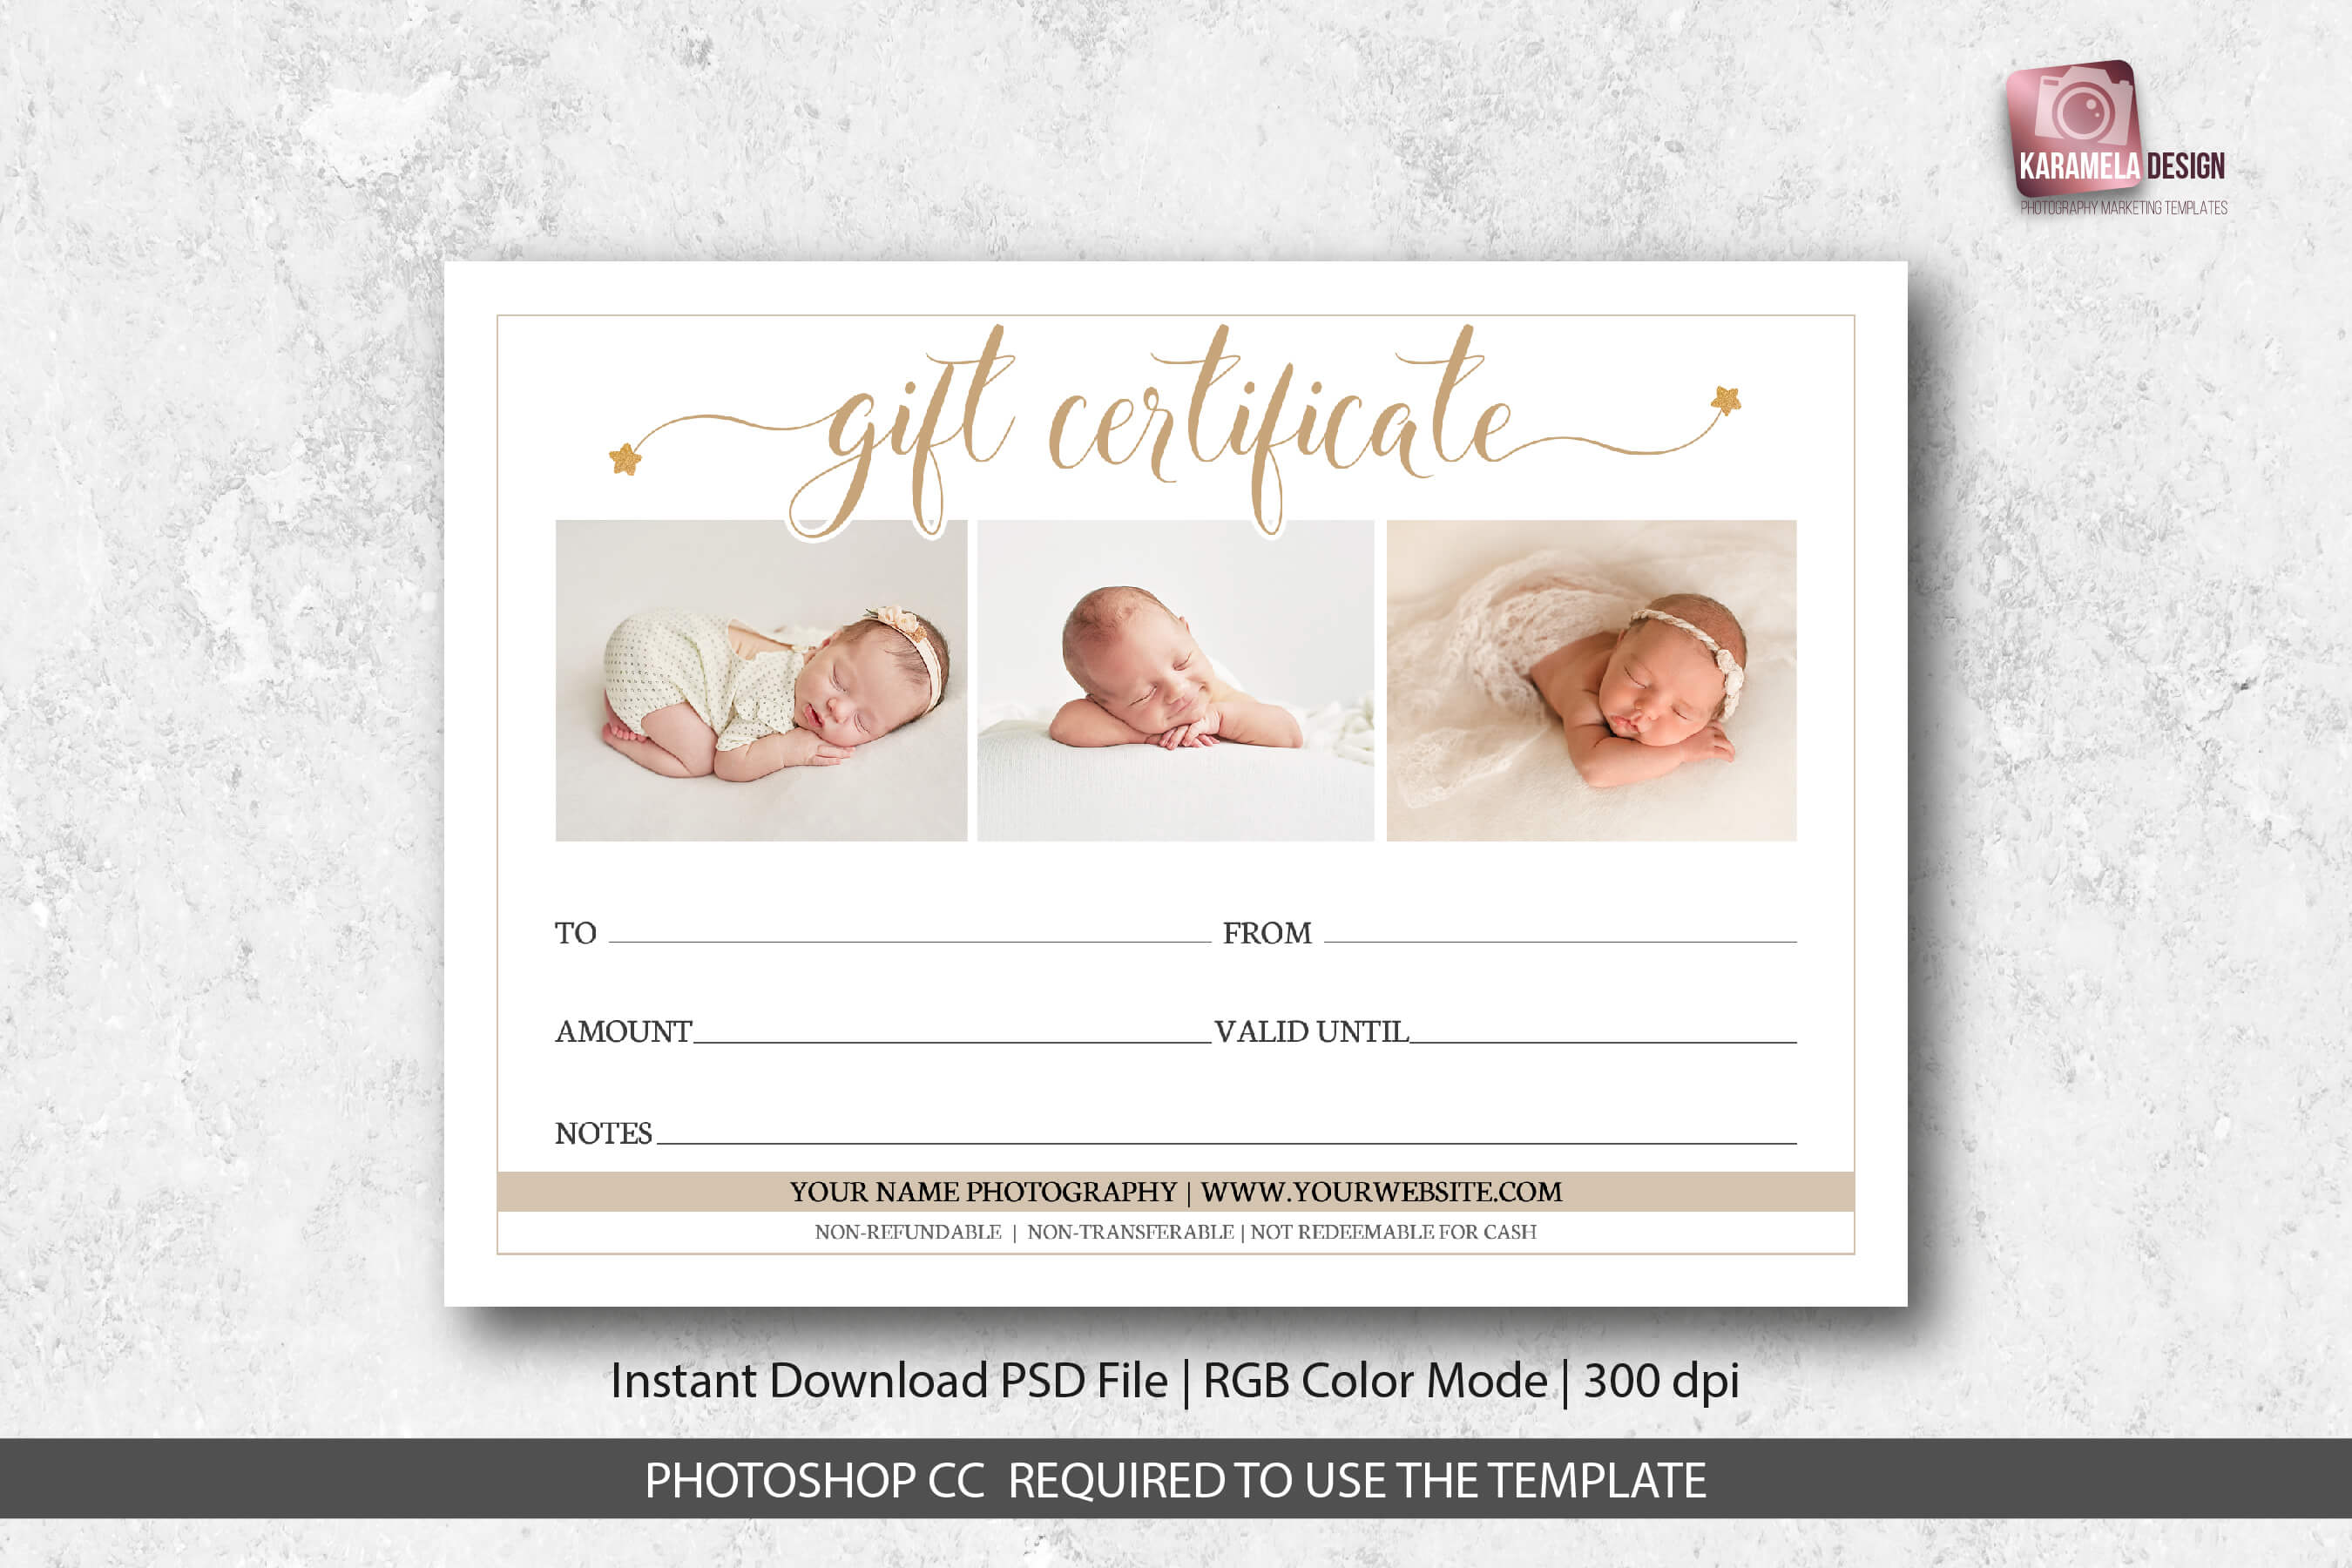 018 Photographer Gift Certificate Template with regard to Free Photography Gift Certificate Template